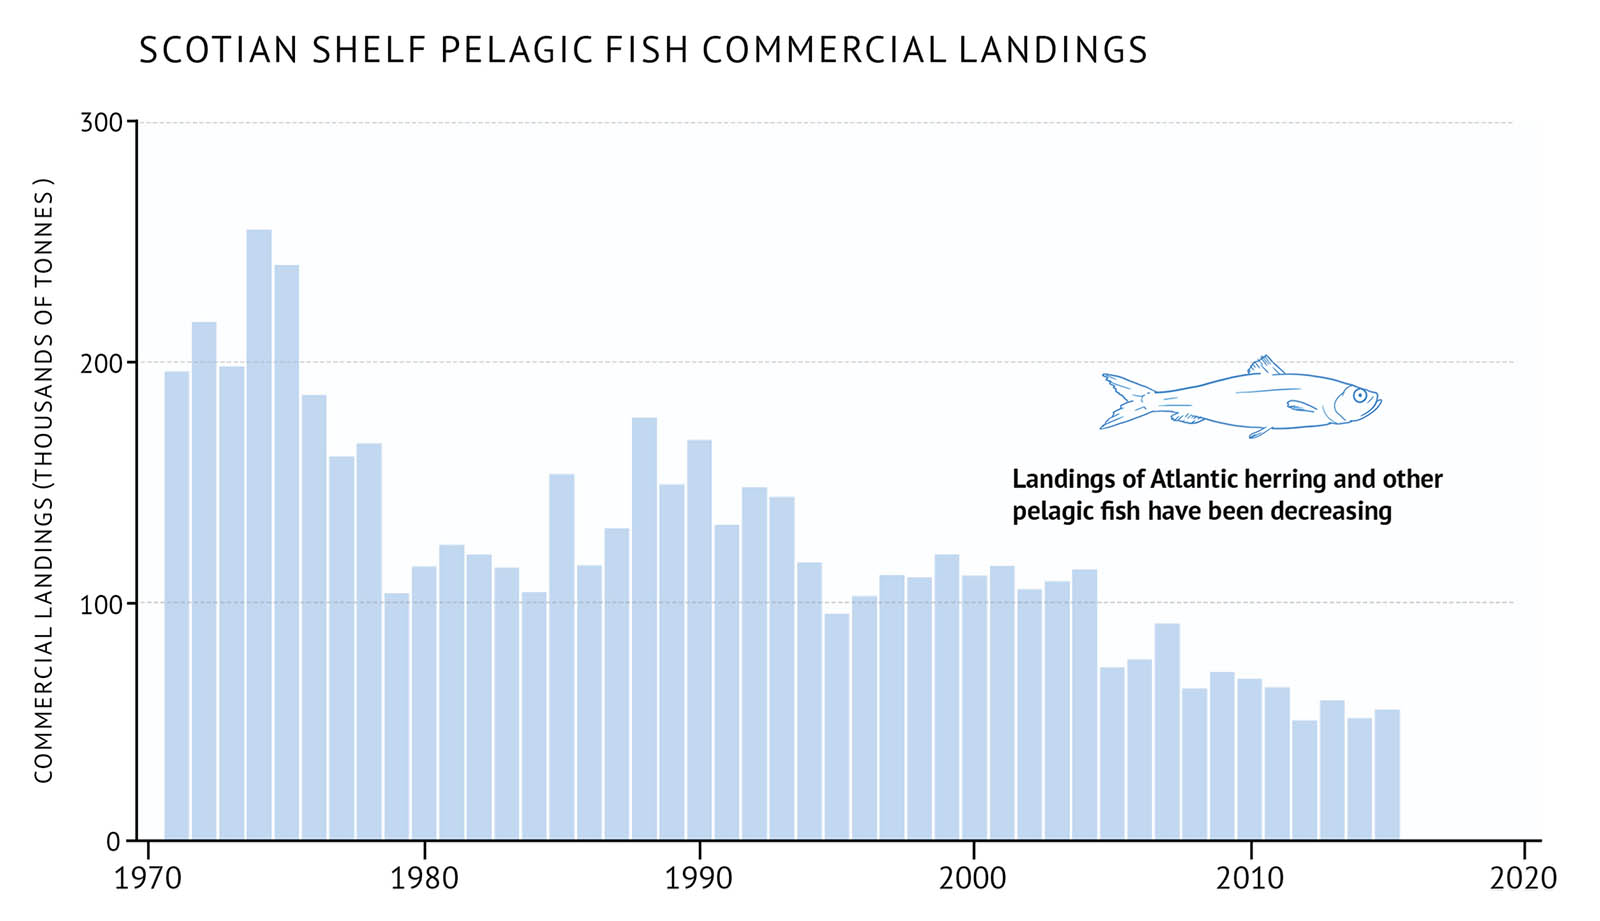 "Figure 29: Scotian Shelf commercial landings for pelagic fish. A bar graph illustrates the commercial landings for pelagic fish on the Scotian Shelf. Text above the graph says ""Scotian Shelf Pelagic Fish Commercial Landings"". The vertical axis on the left shows the commercial landings in units of thousands of tonnes from 0 to 300 in increments of 100. The bottom horizontal axis shows the years between 1970 and 2020 in 10 year increments. The commercial landings are represented by light blue vertical bars. The landings begin between 200 and 250 thousand tonnes in the early 1970s. There is a decline in the late 1980s to early 1990s and the decline continues to the last year of data in 2015. A small, light blue outline-drawing of an Atlantic herring is placed on the graph above the vertical bars to the right hand-side. Below the drawing there is text which states ""Landings of Atlantic herring and other pelagic fish have been decreasing""."